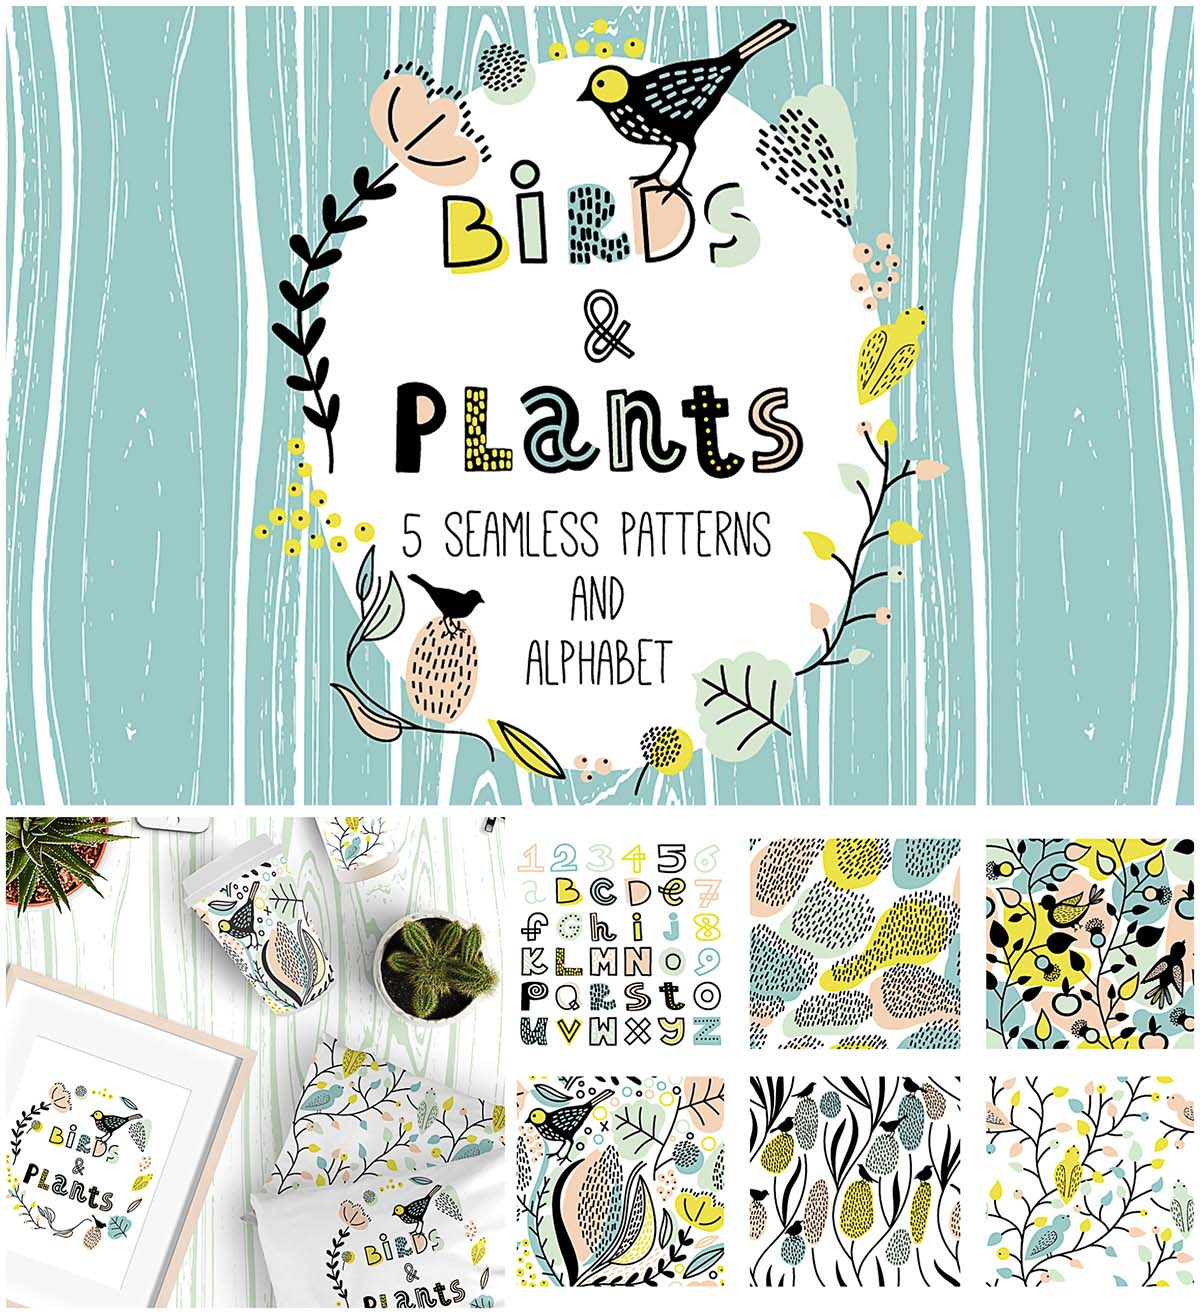 Cute birds and plants illustrations and patterns